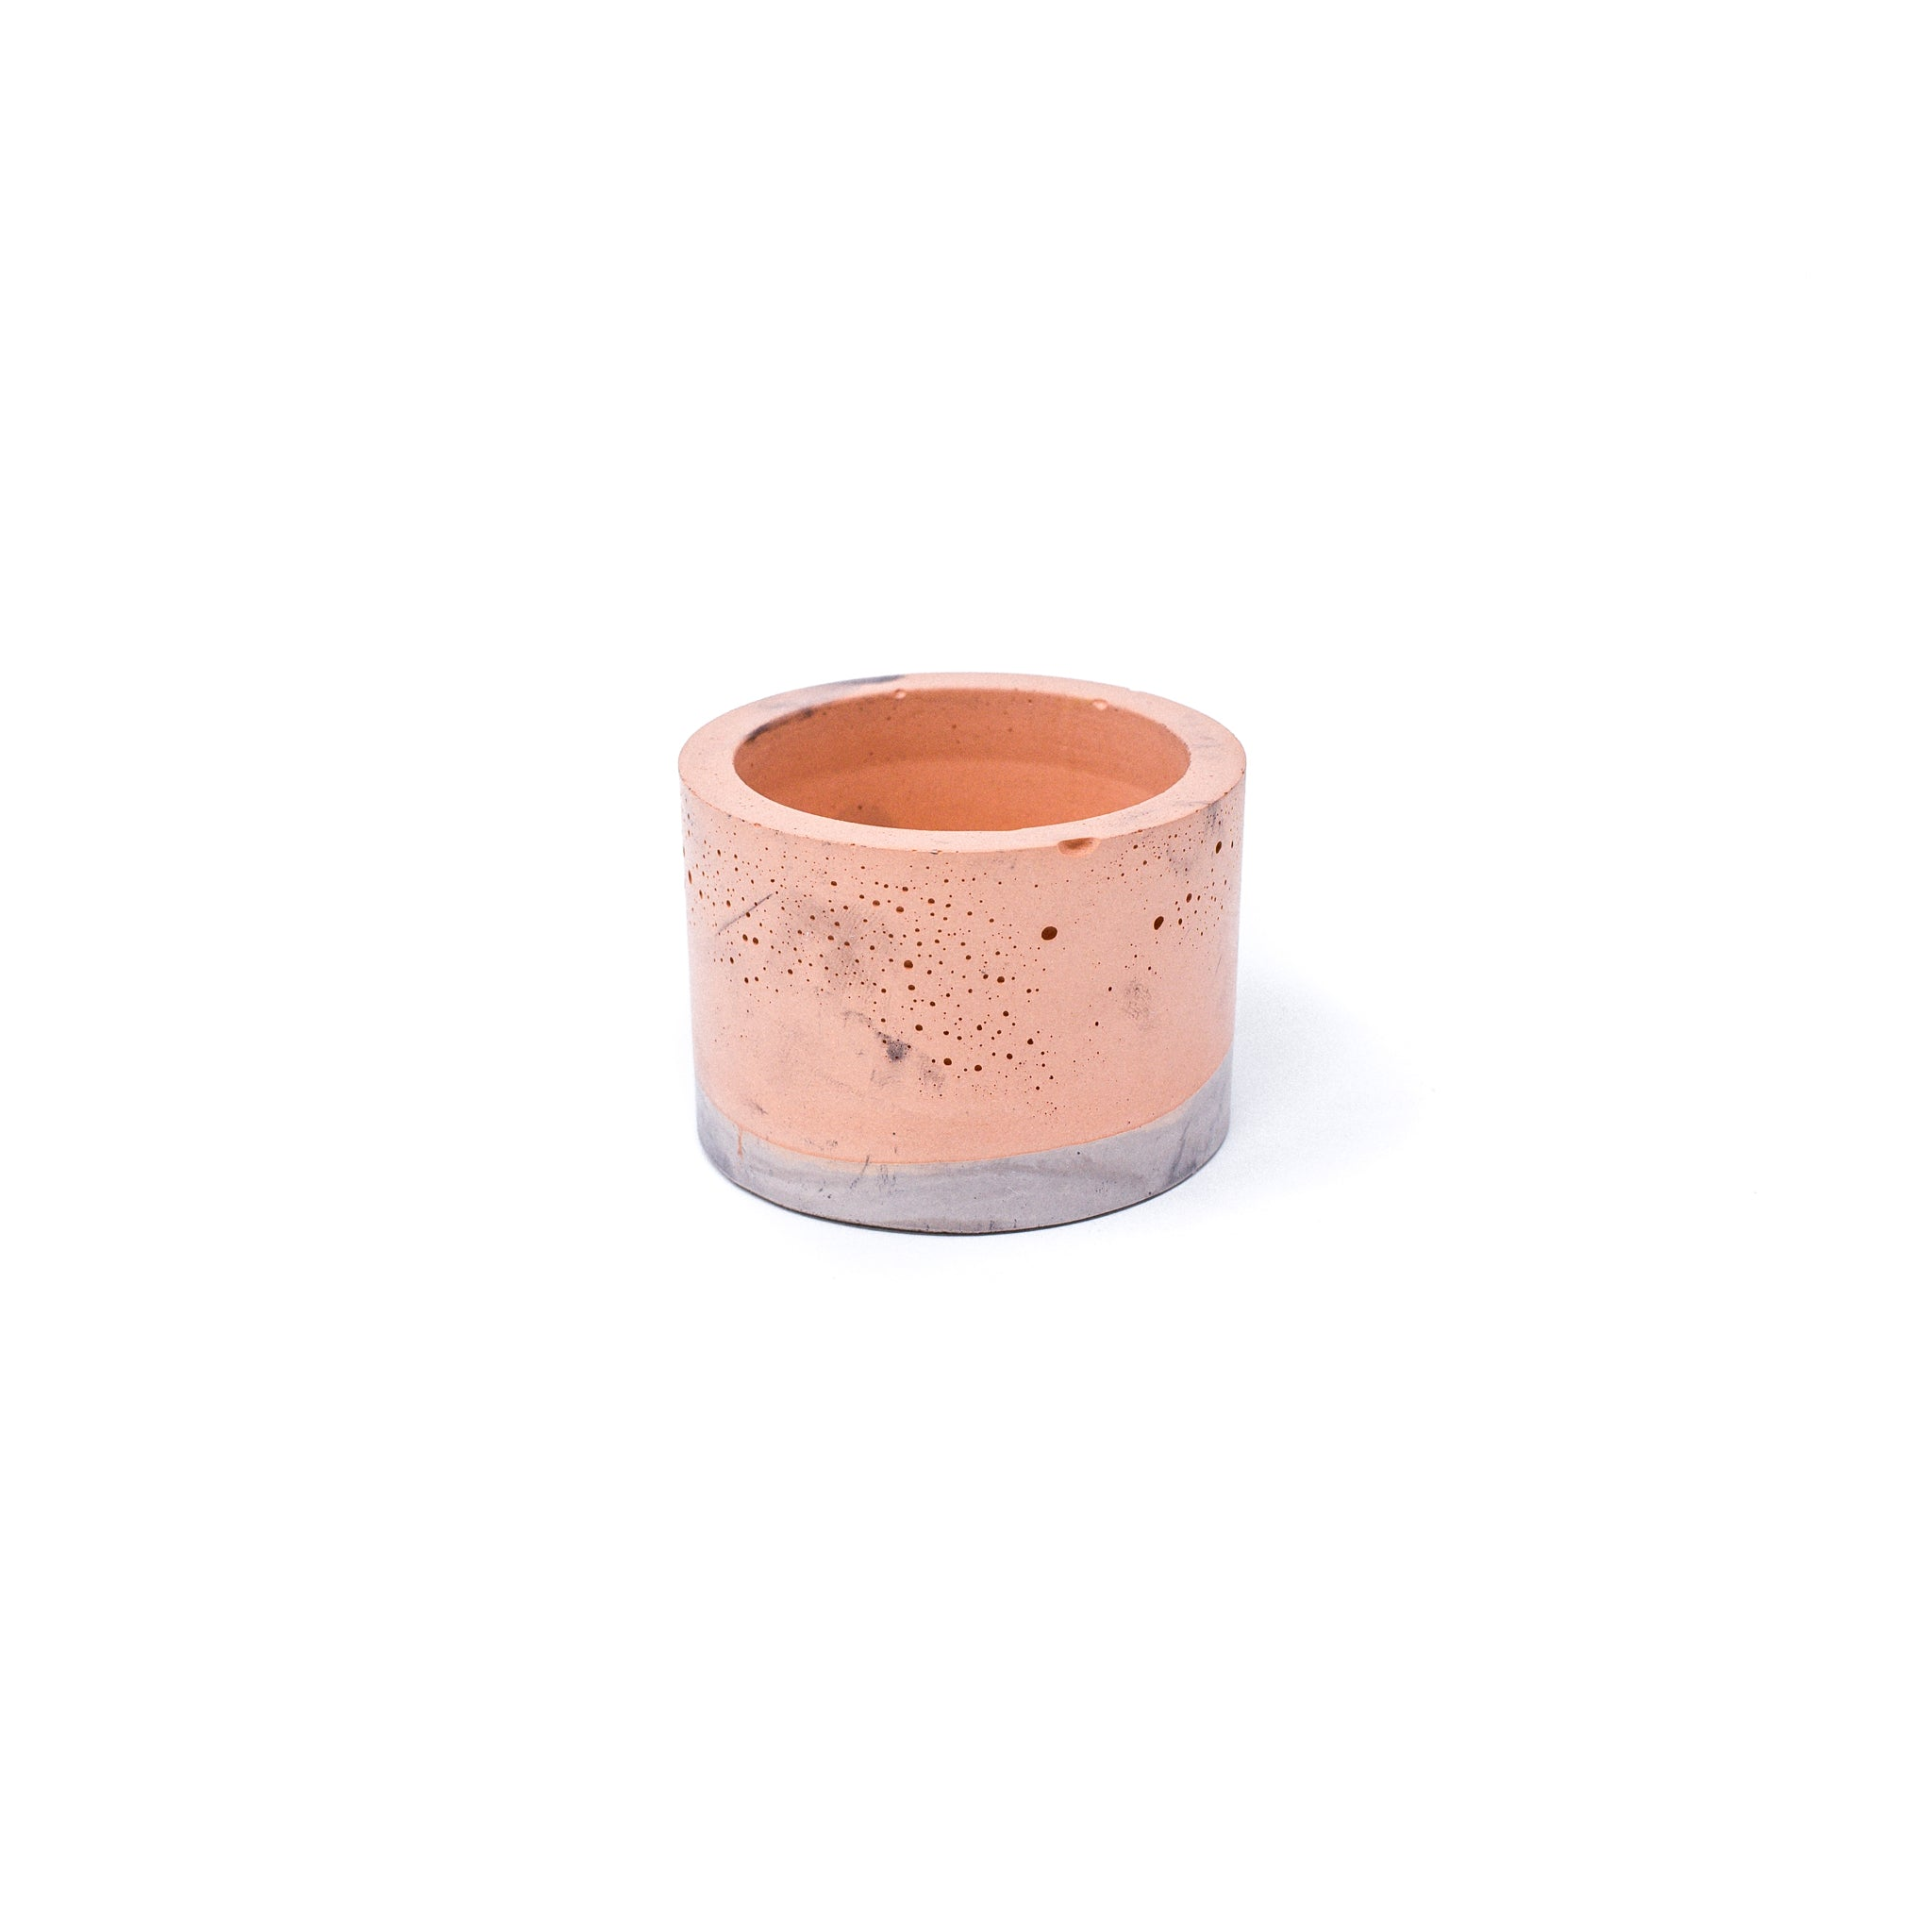 Concrete Planter: Short Cylinder (Orange & Gray)